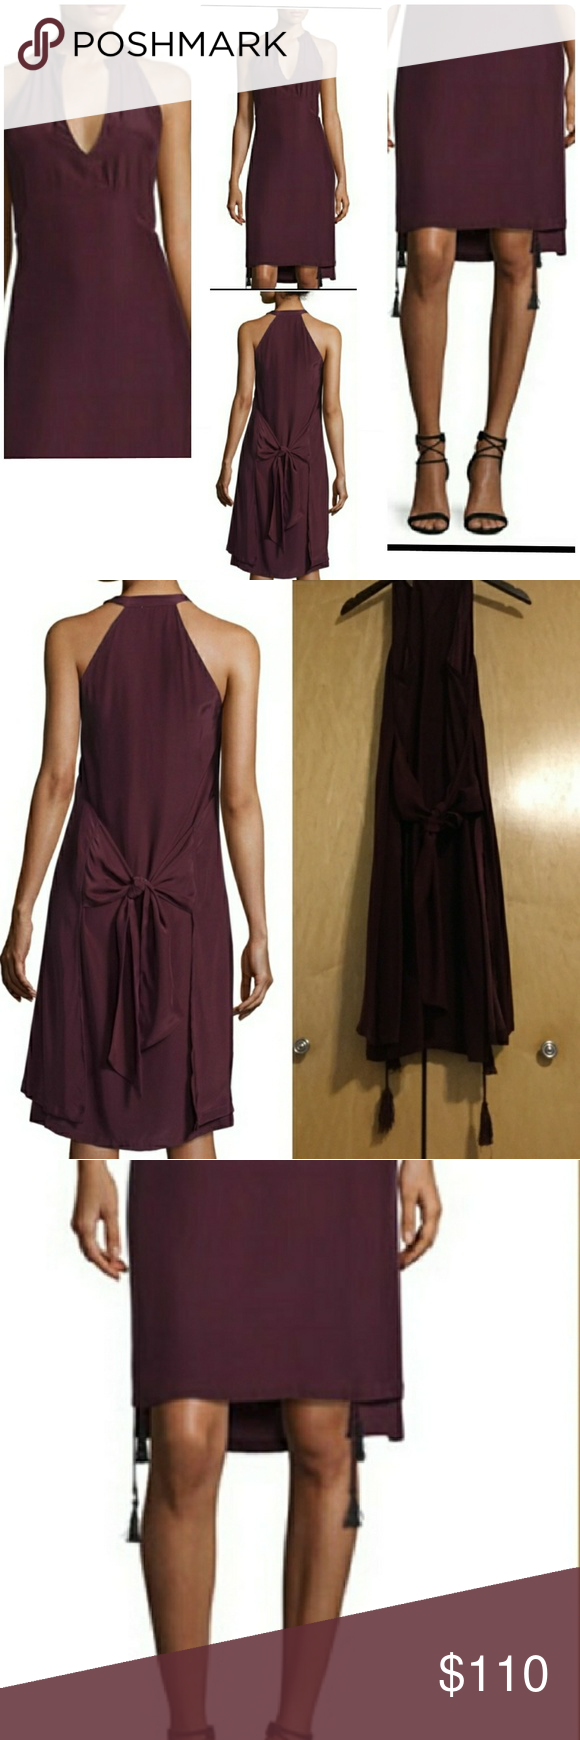 Foundrae Tassel-Trim Apron Dress, Burnt Raisin FOUNDRAE Tassel-Trim Apron Dress, Burnt Raisin Boho-feel dress with cutaway shoulders and tassels. Split round neckline. Sleeveless. Pullover style. Empire seaming. Cutaway front and back shoulders. Attached tassels at outer hem. Double layer back with center self-tie. About 40